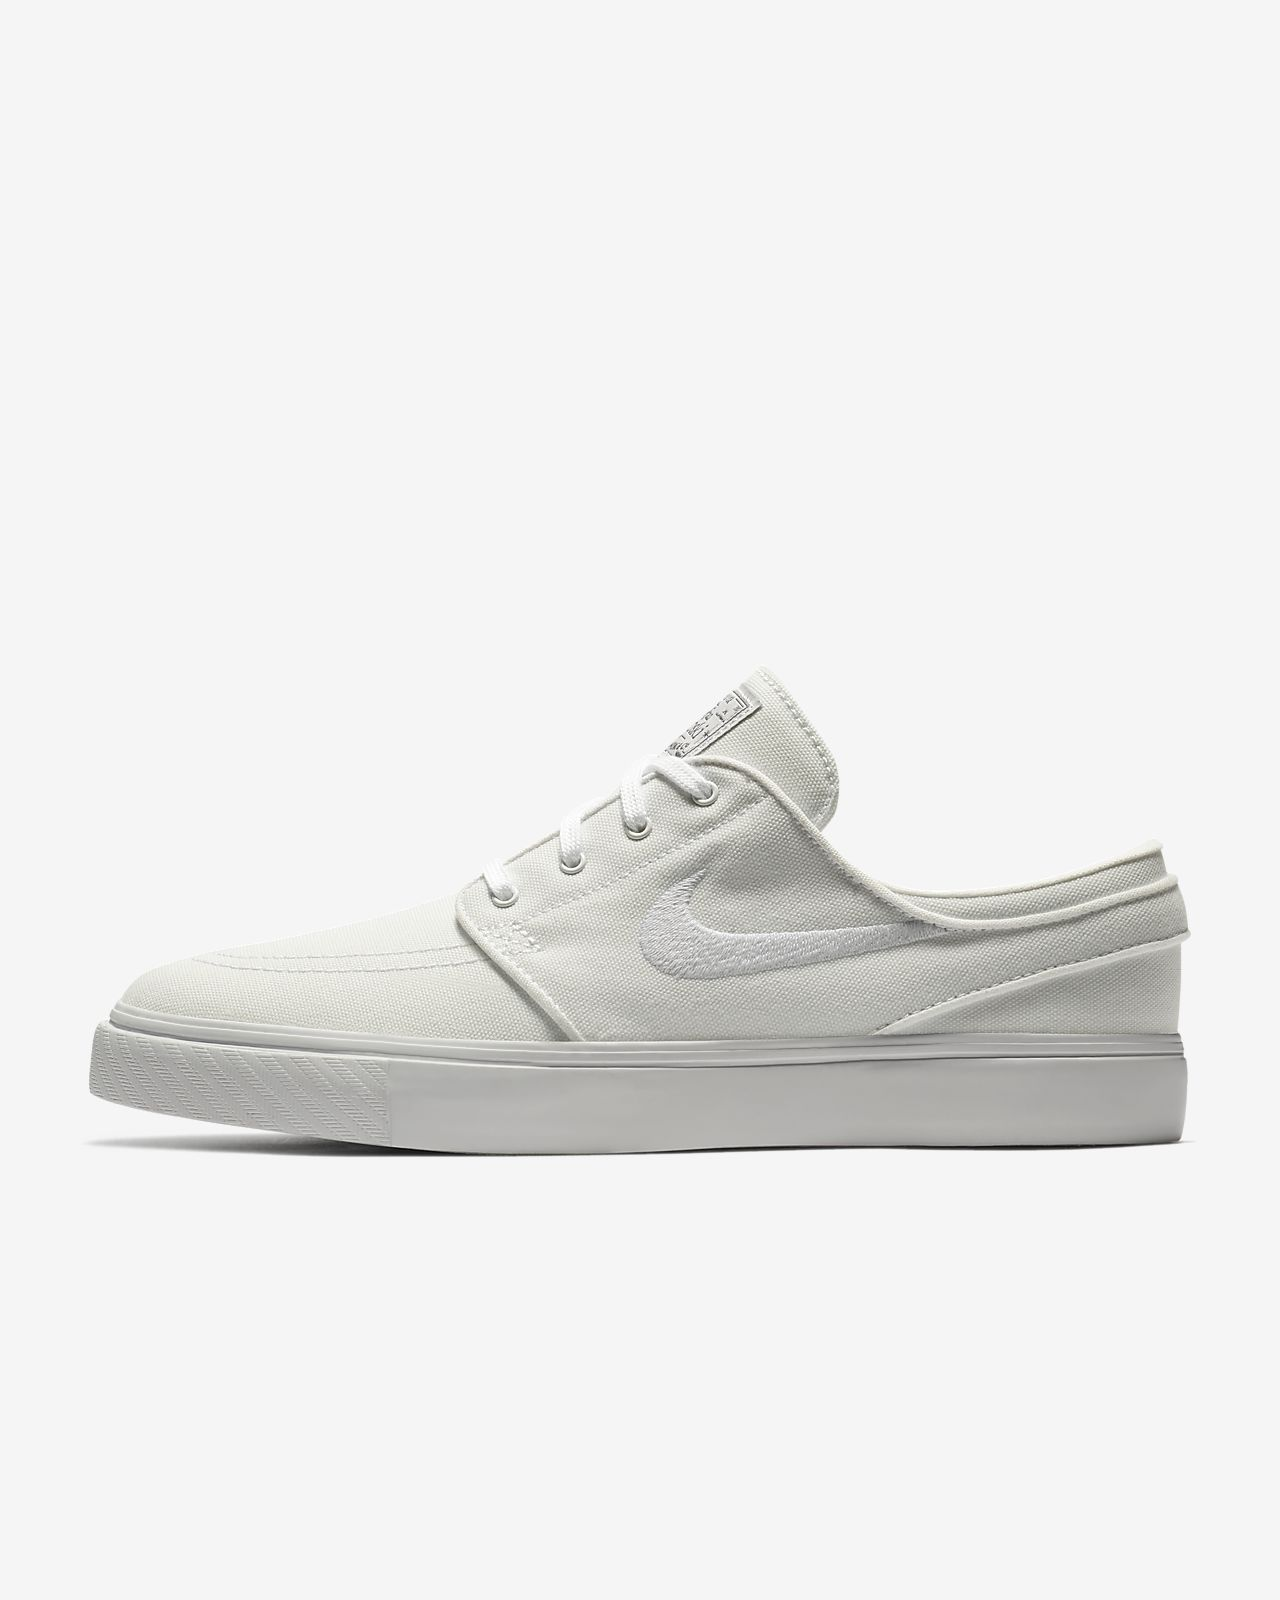 the latest 9d10e 264cf Men s Skate Shoe. Nike SB Zoom Stefan Janoski Canvas